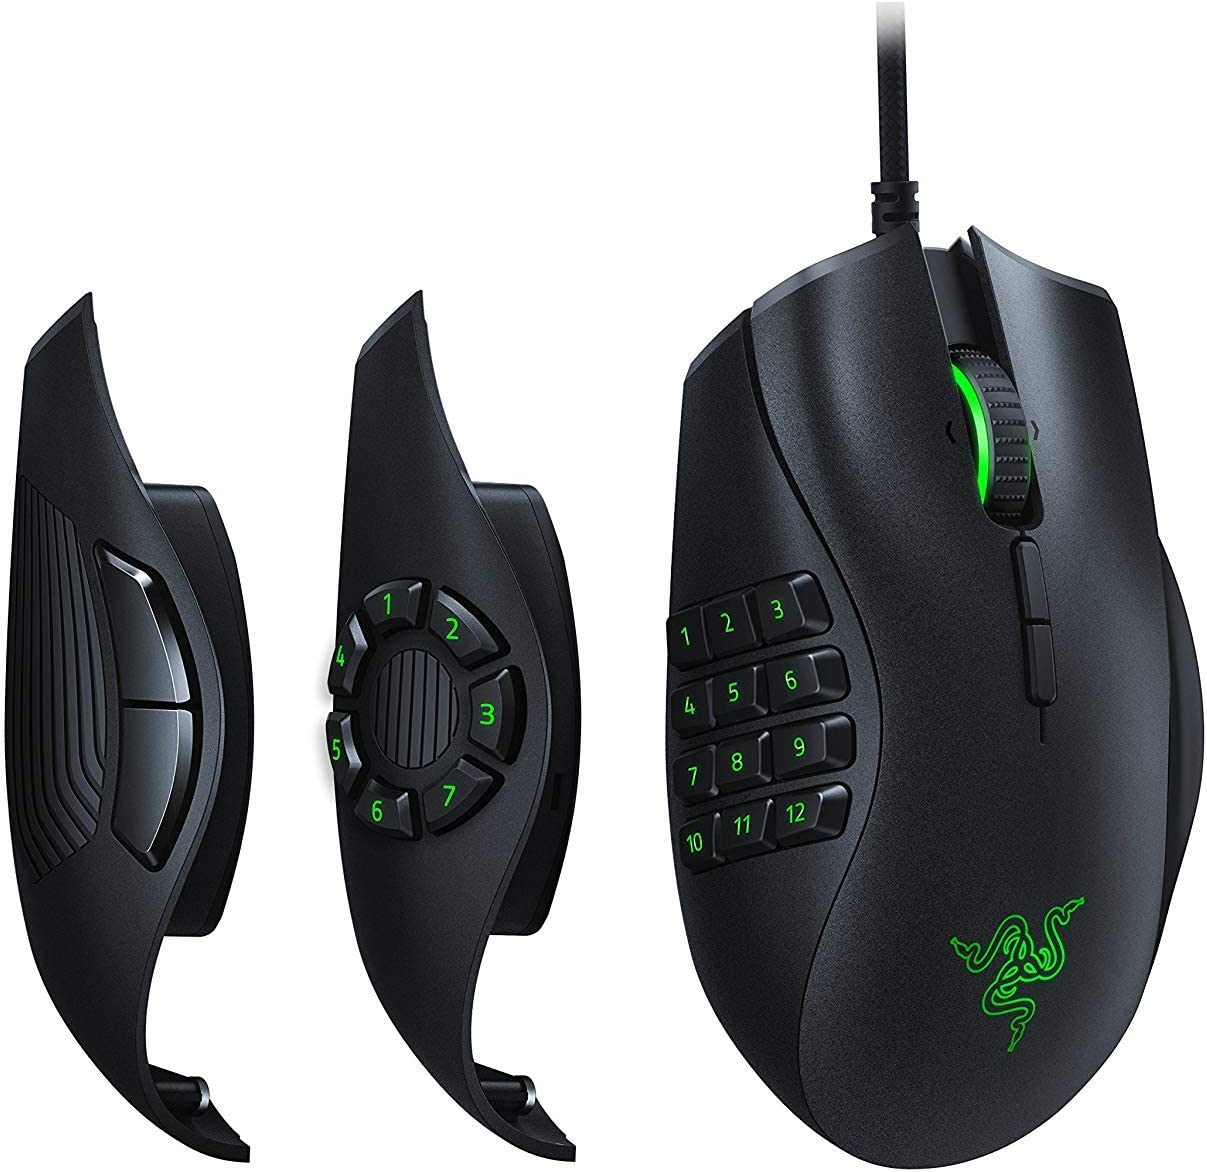 IDS Home Naga Trinity Gaming Mouse, Interchangeable Side Plate wtih 2, 7, 12 Button Configurations - Mechanical Switches